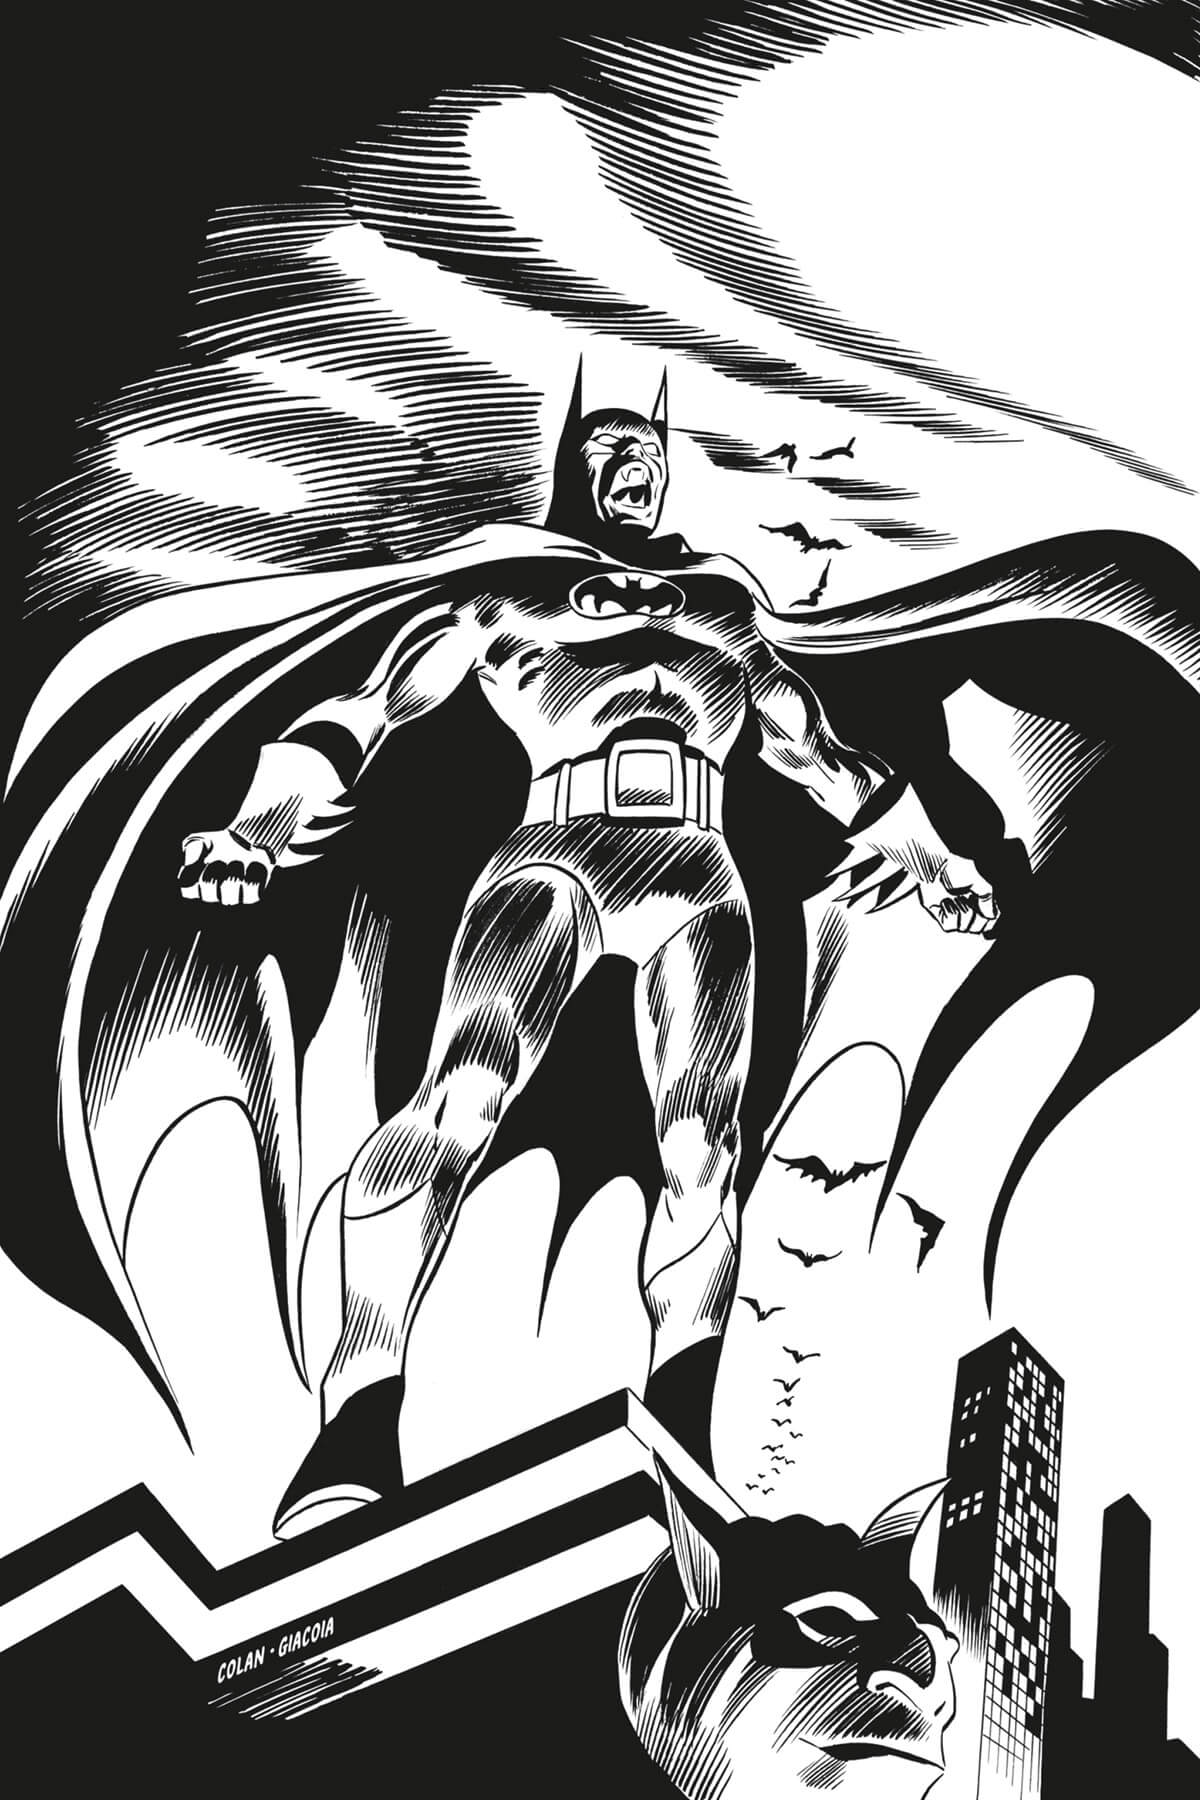 Batman 351 by Gene Colan and Frank Giacoia